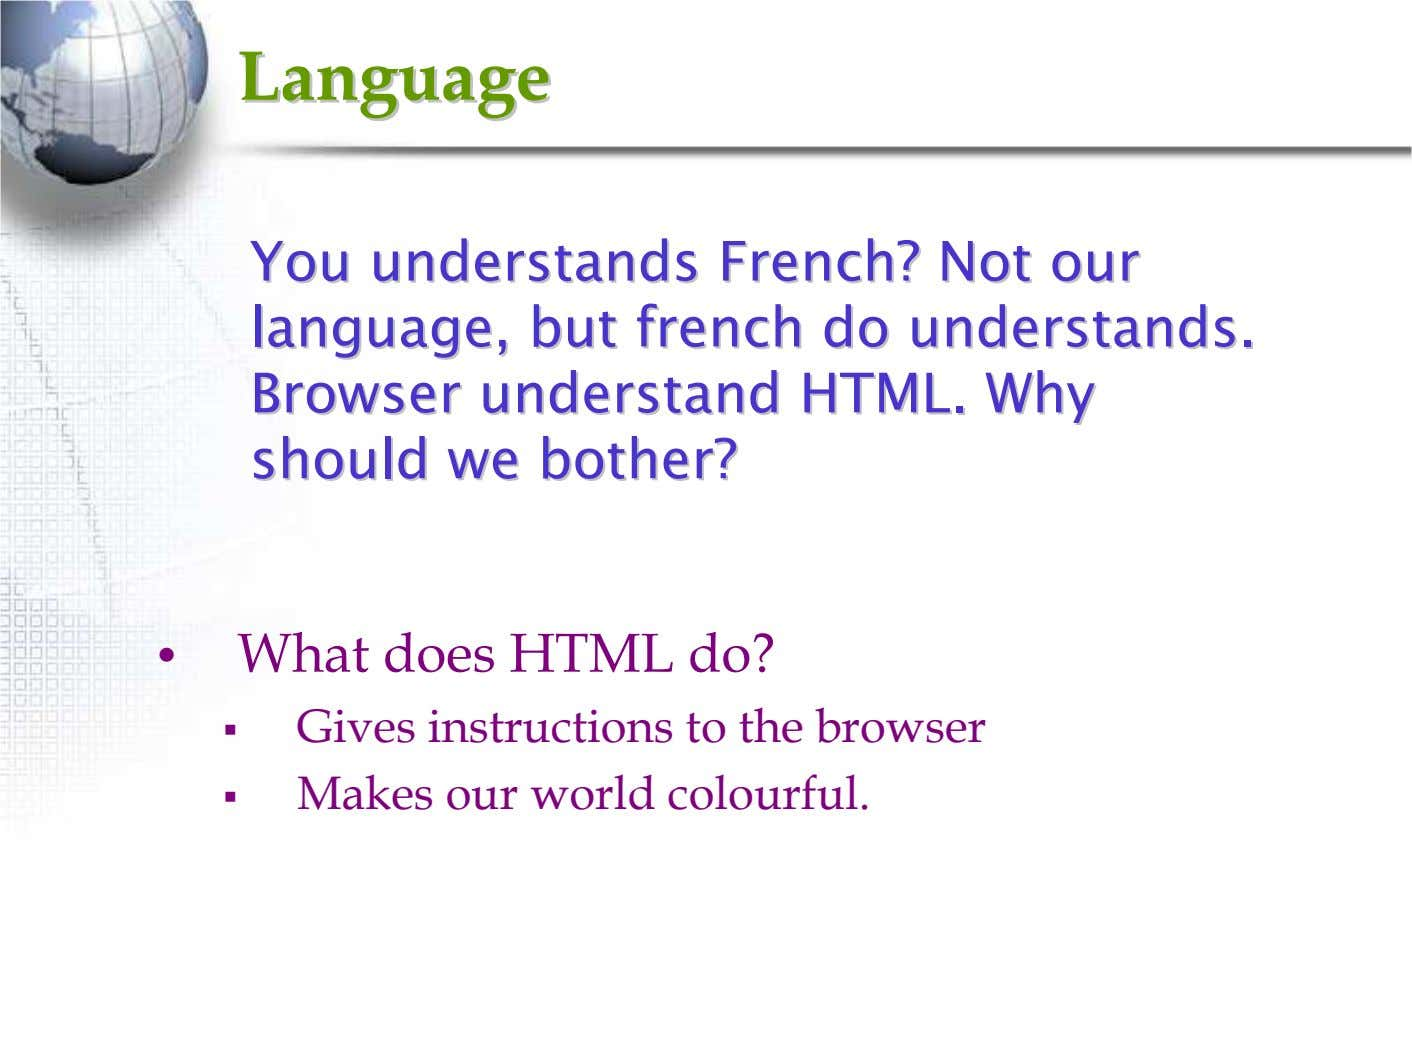 LanguageLanguage YouYou understandsunderstands French?French? NotNot ourour language,language, butbut frenchfrench dodo